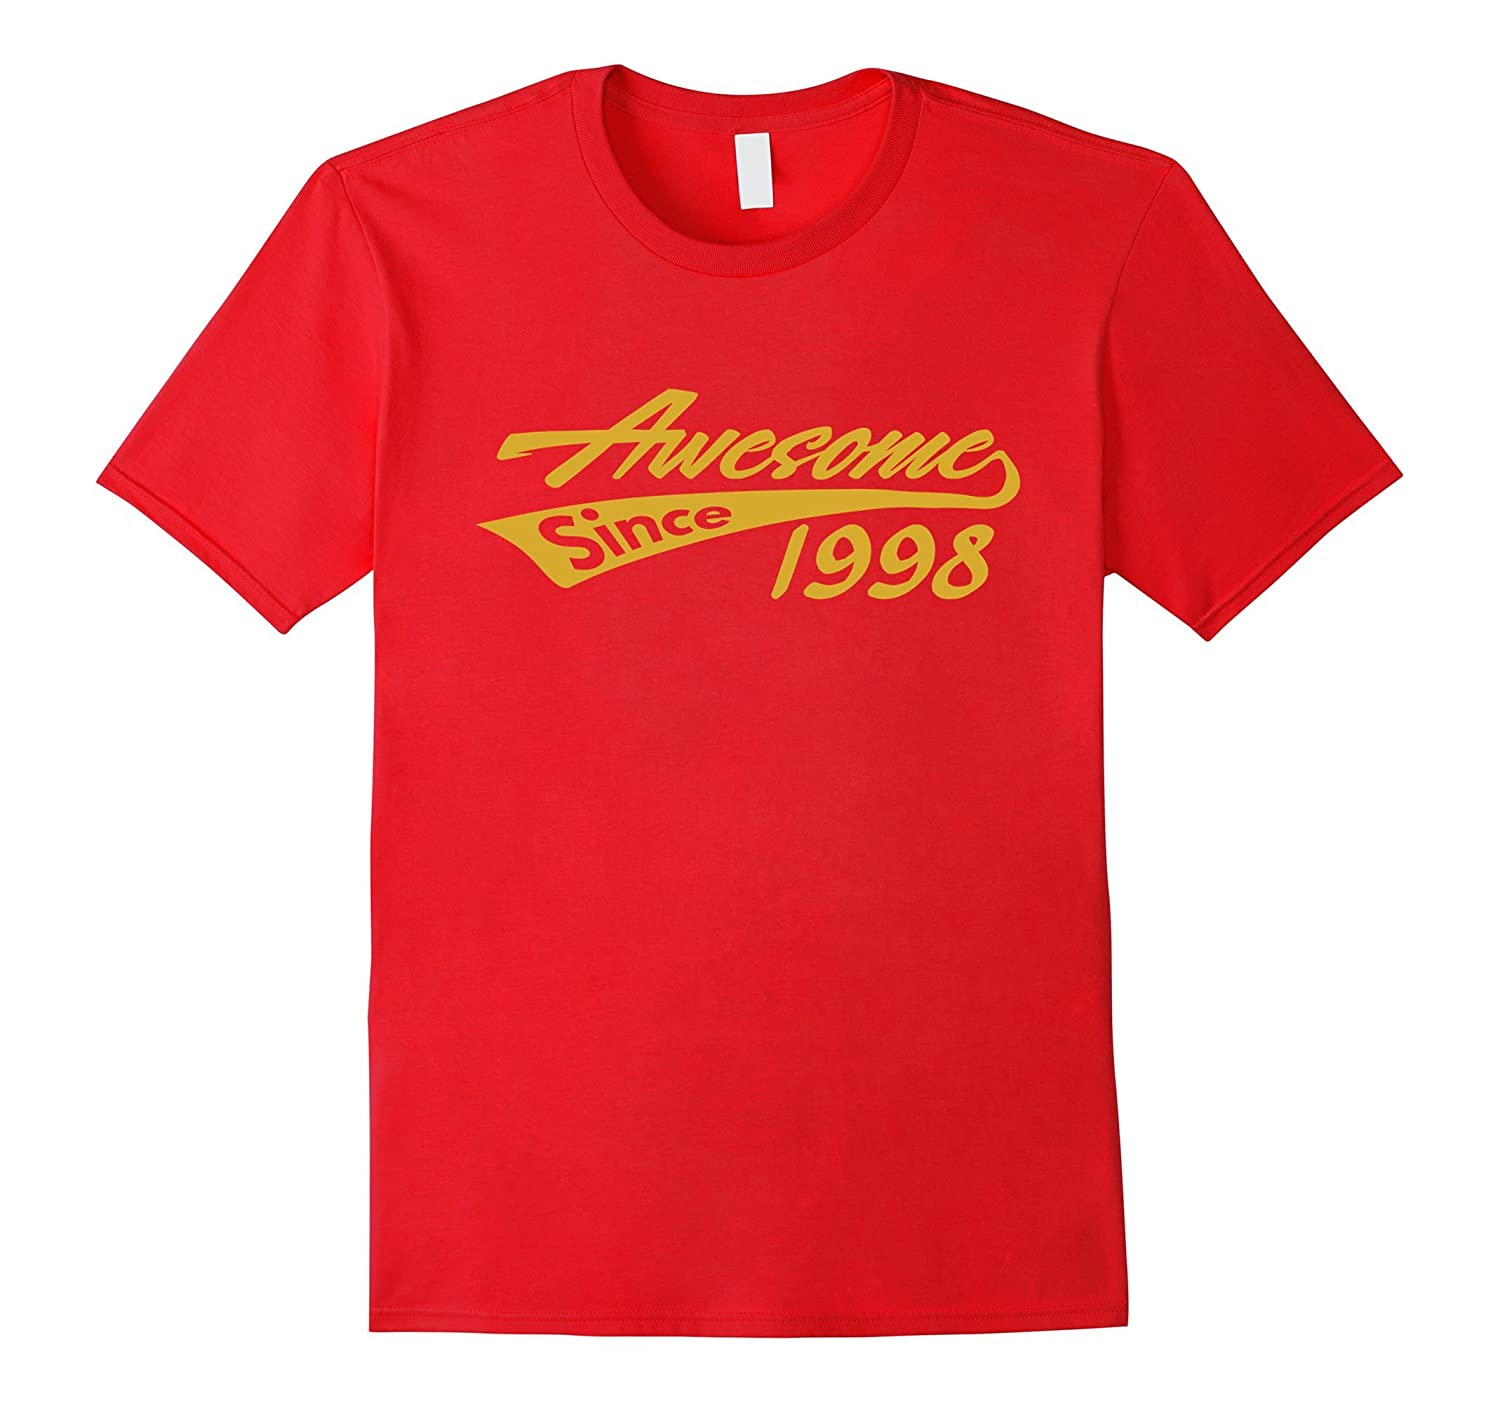 Awesome Since 1998 T-shirt Cool Luxury Fashion Top Tee-Art